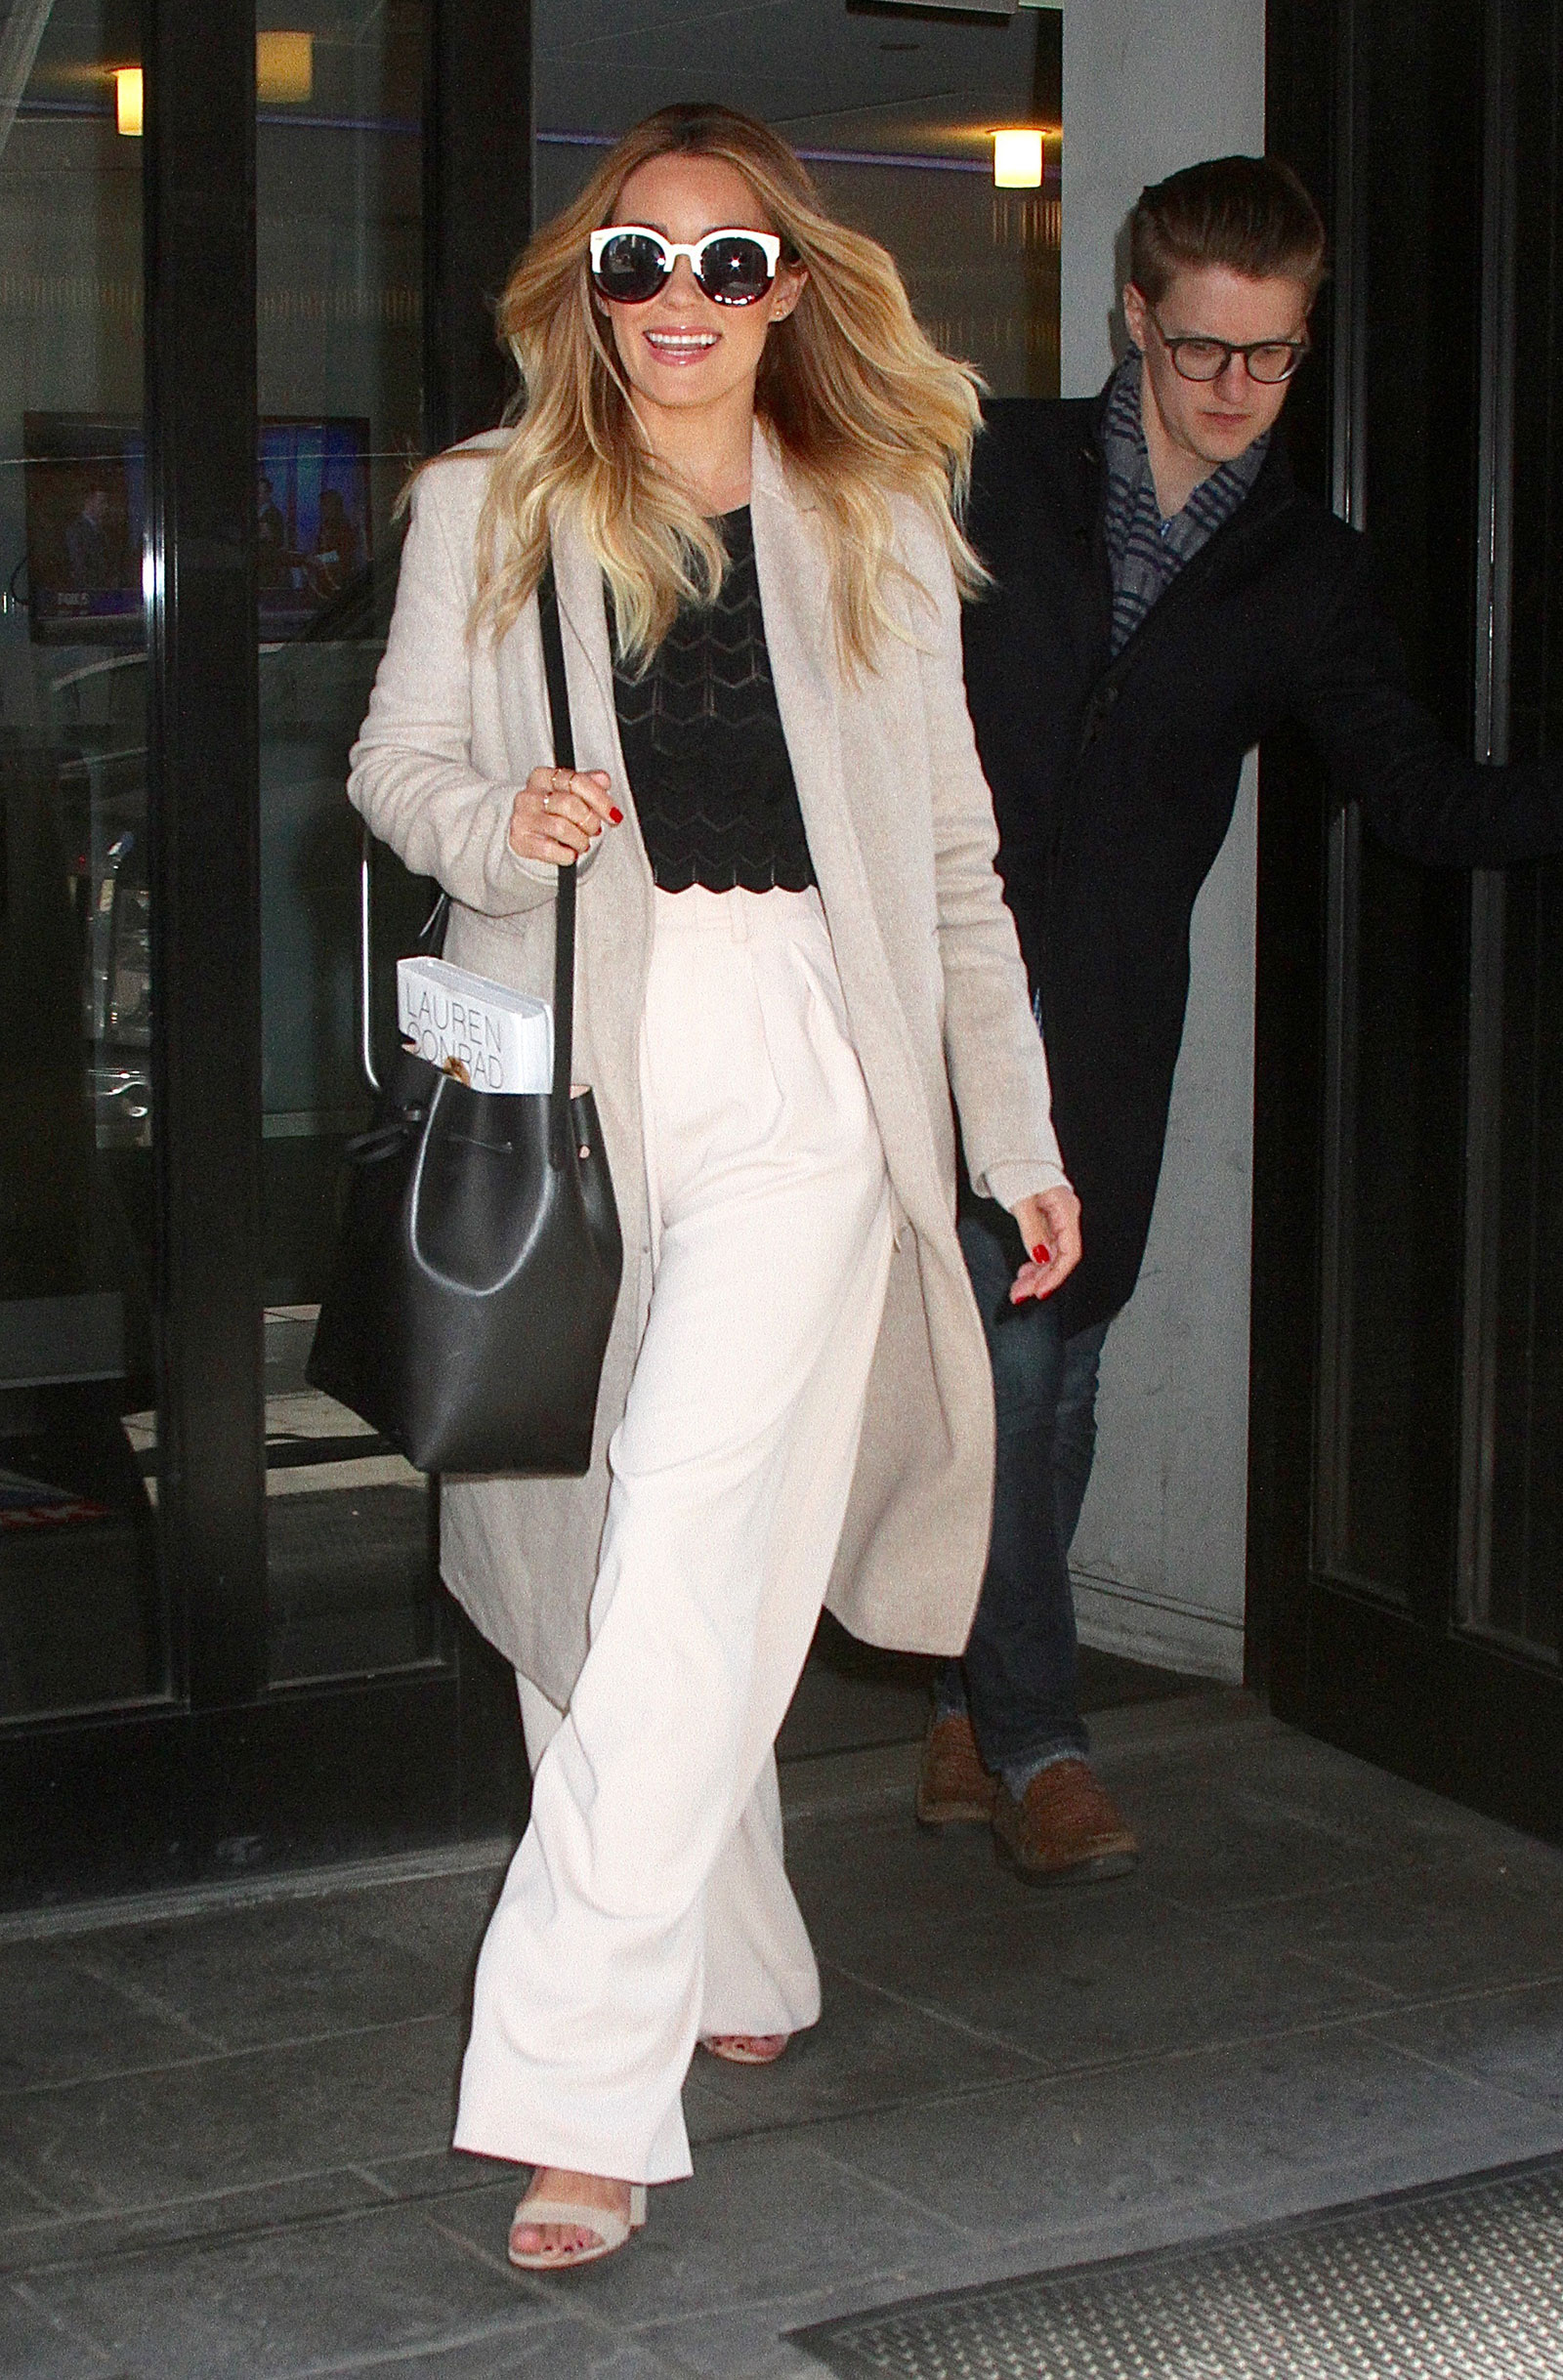 Get Lauren Conrad's chic white wide leg pants and black scalloped top look for yourself with these budget-friendly finds.